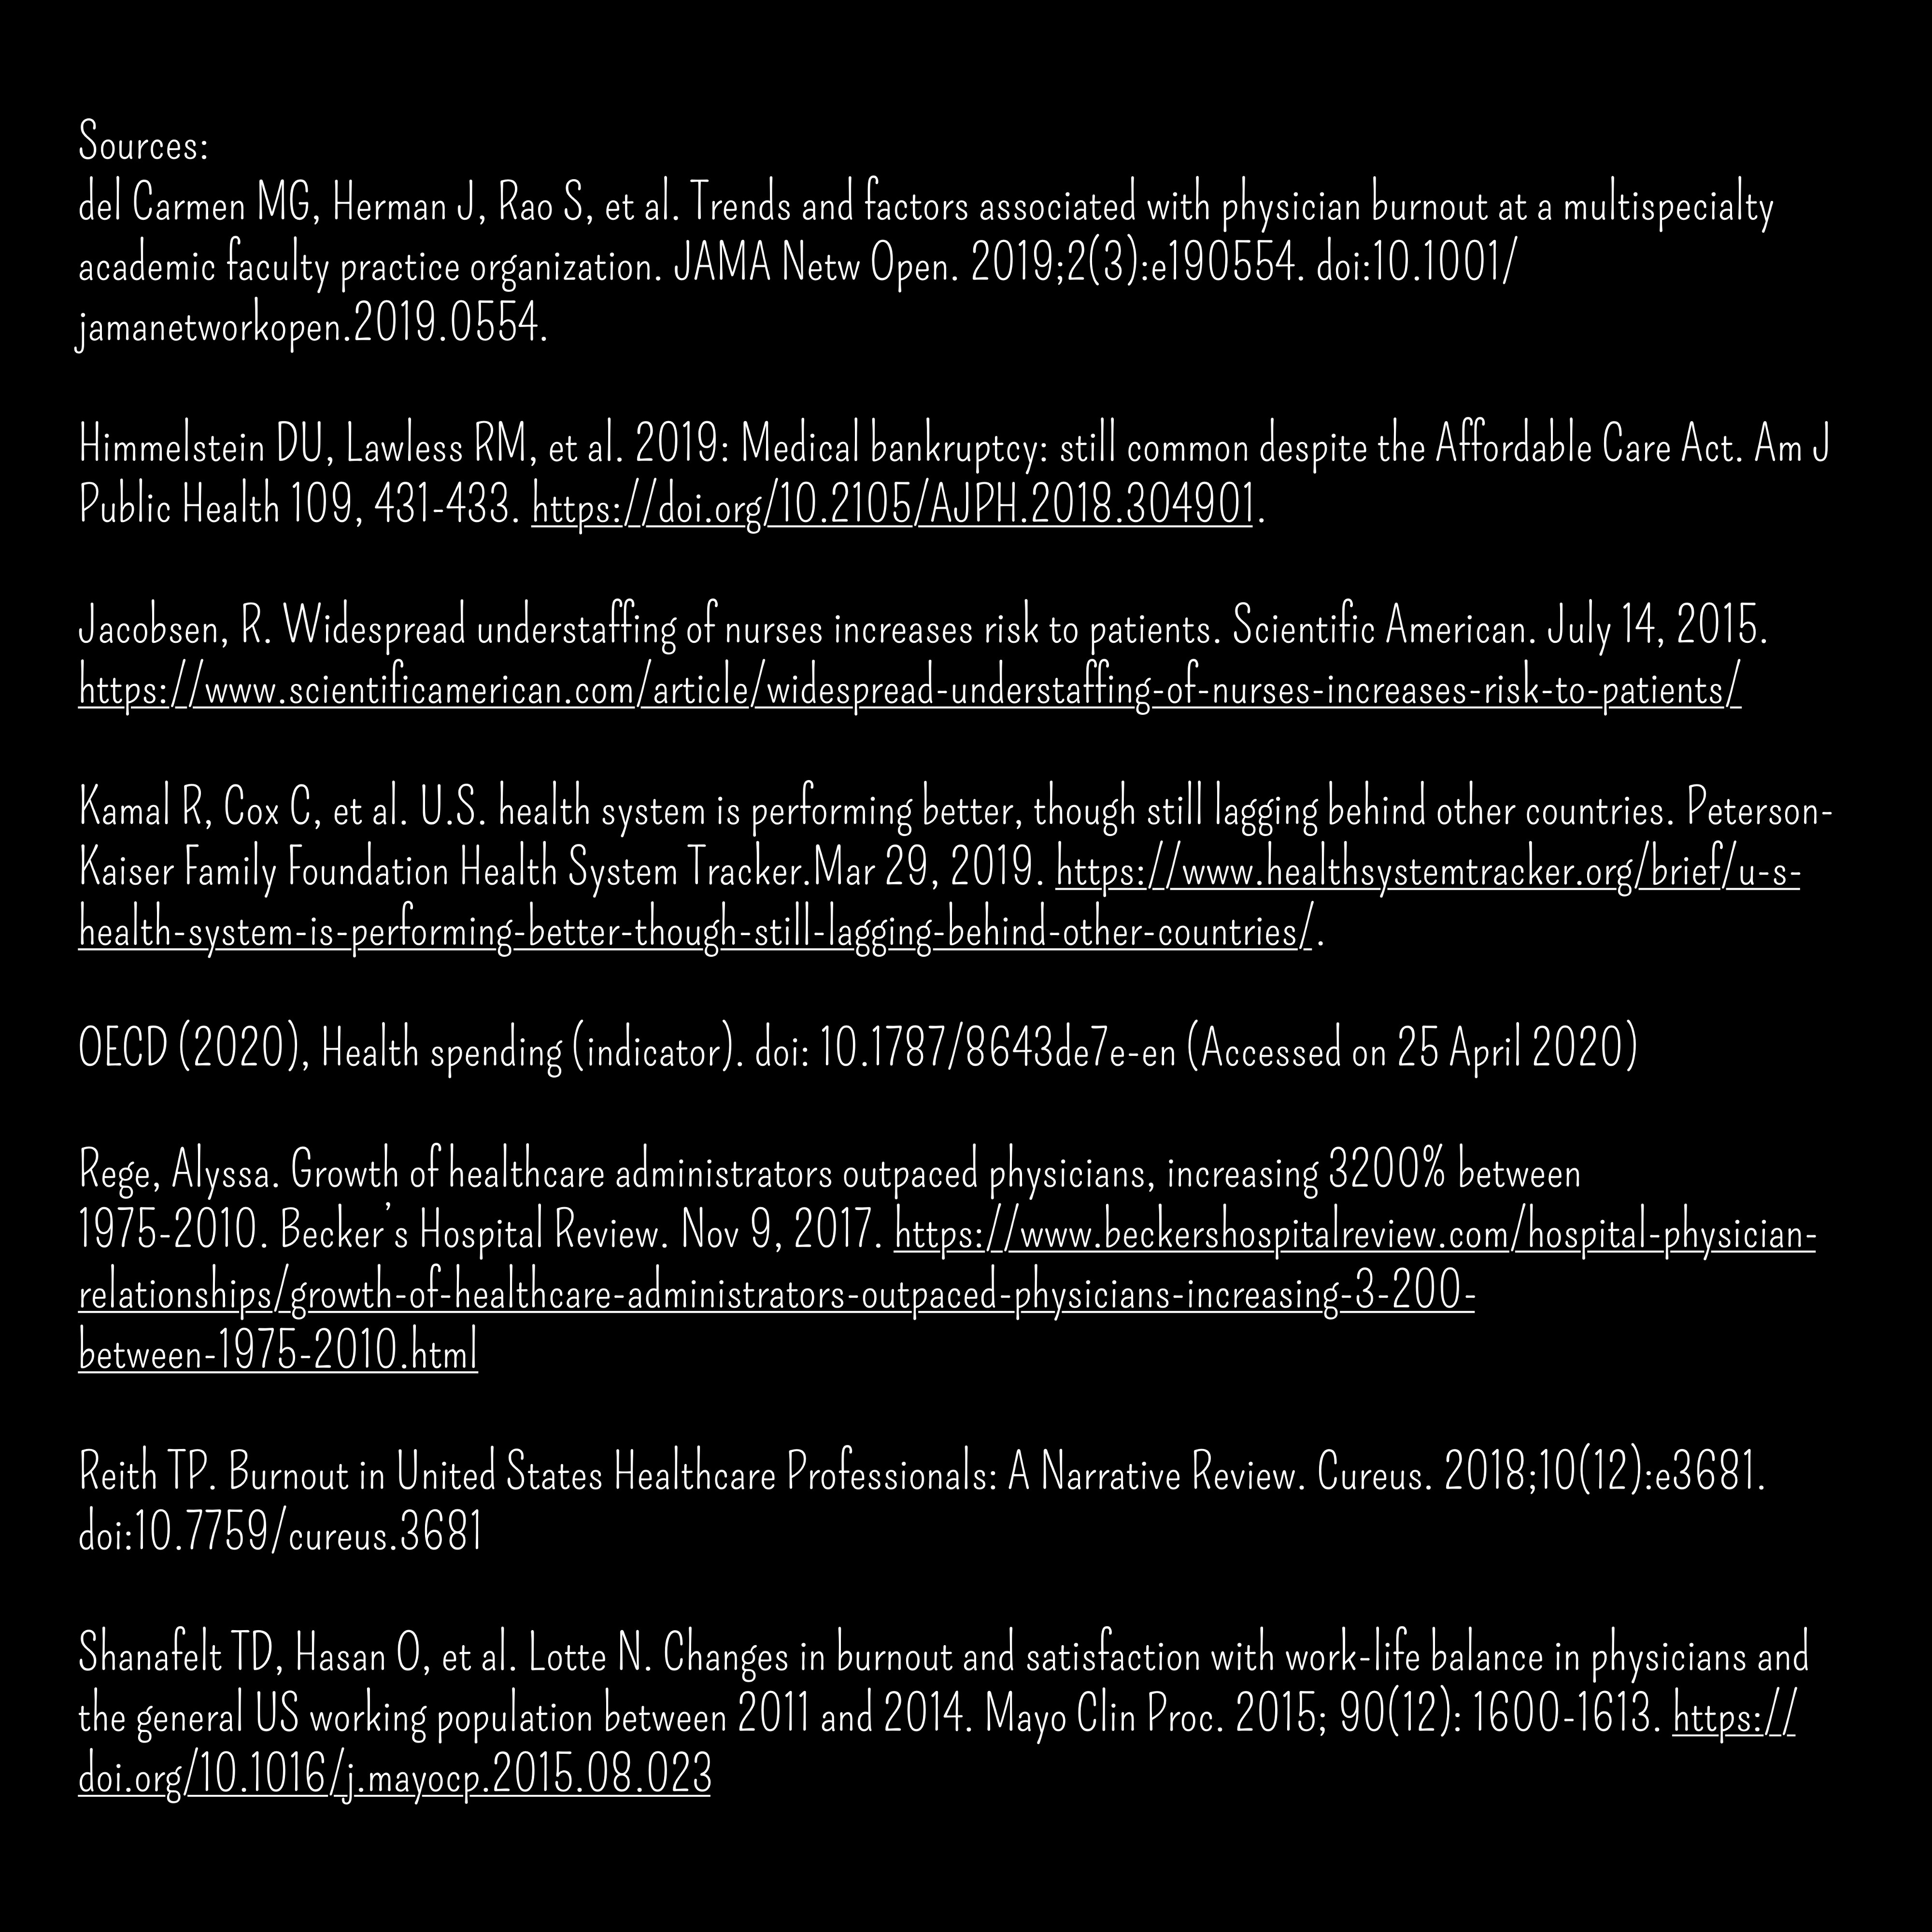 List of reference works.